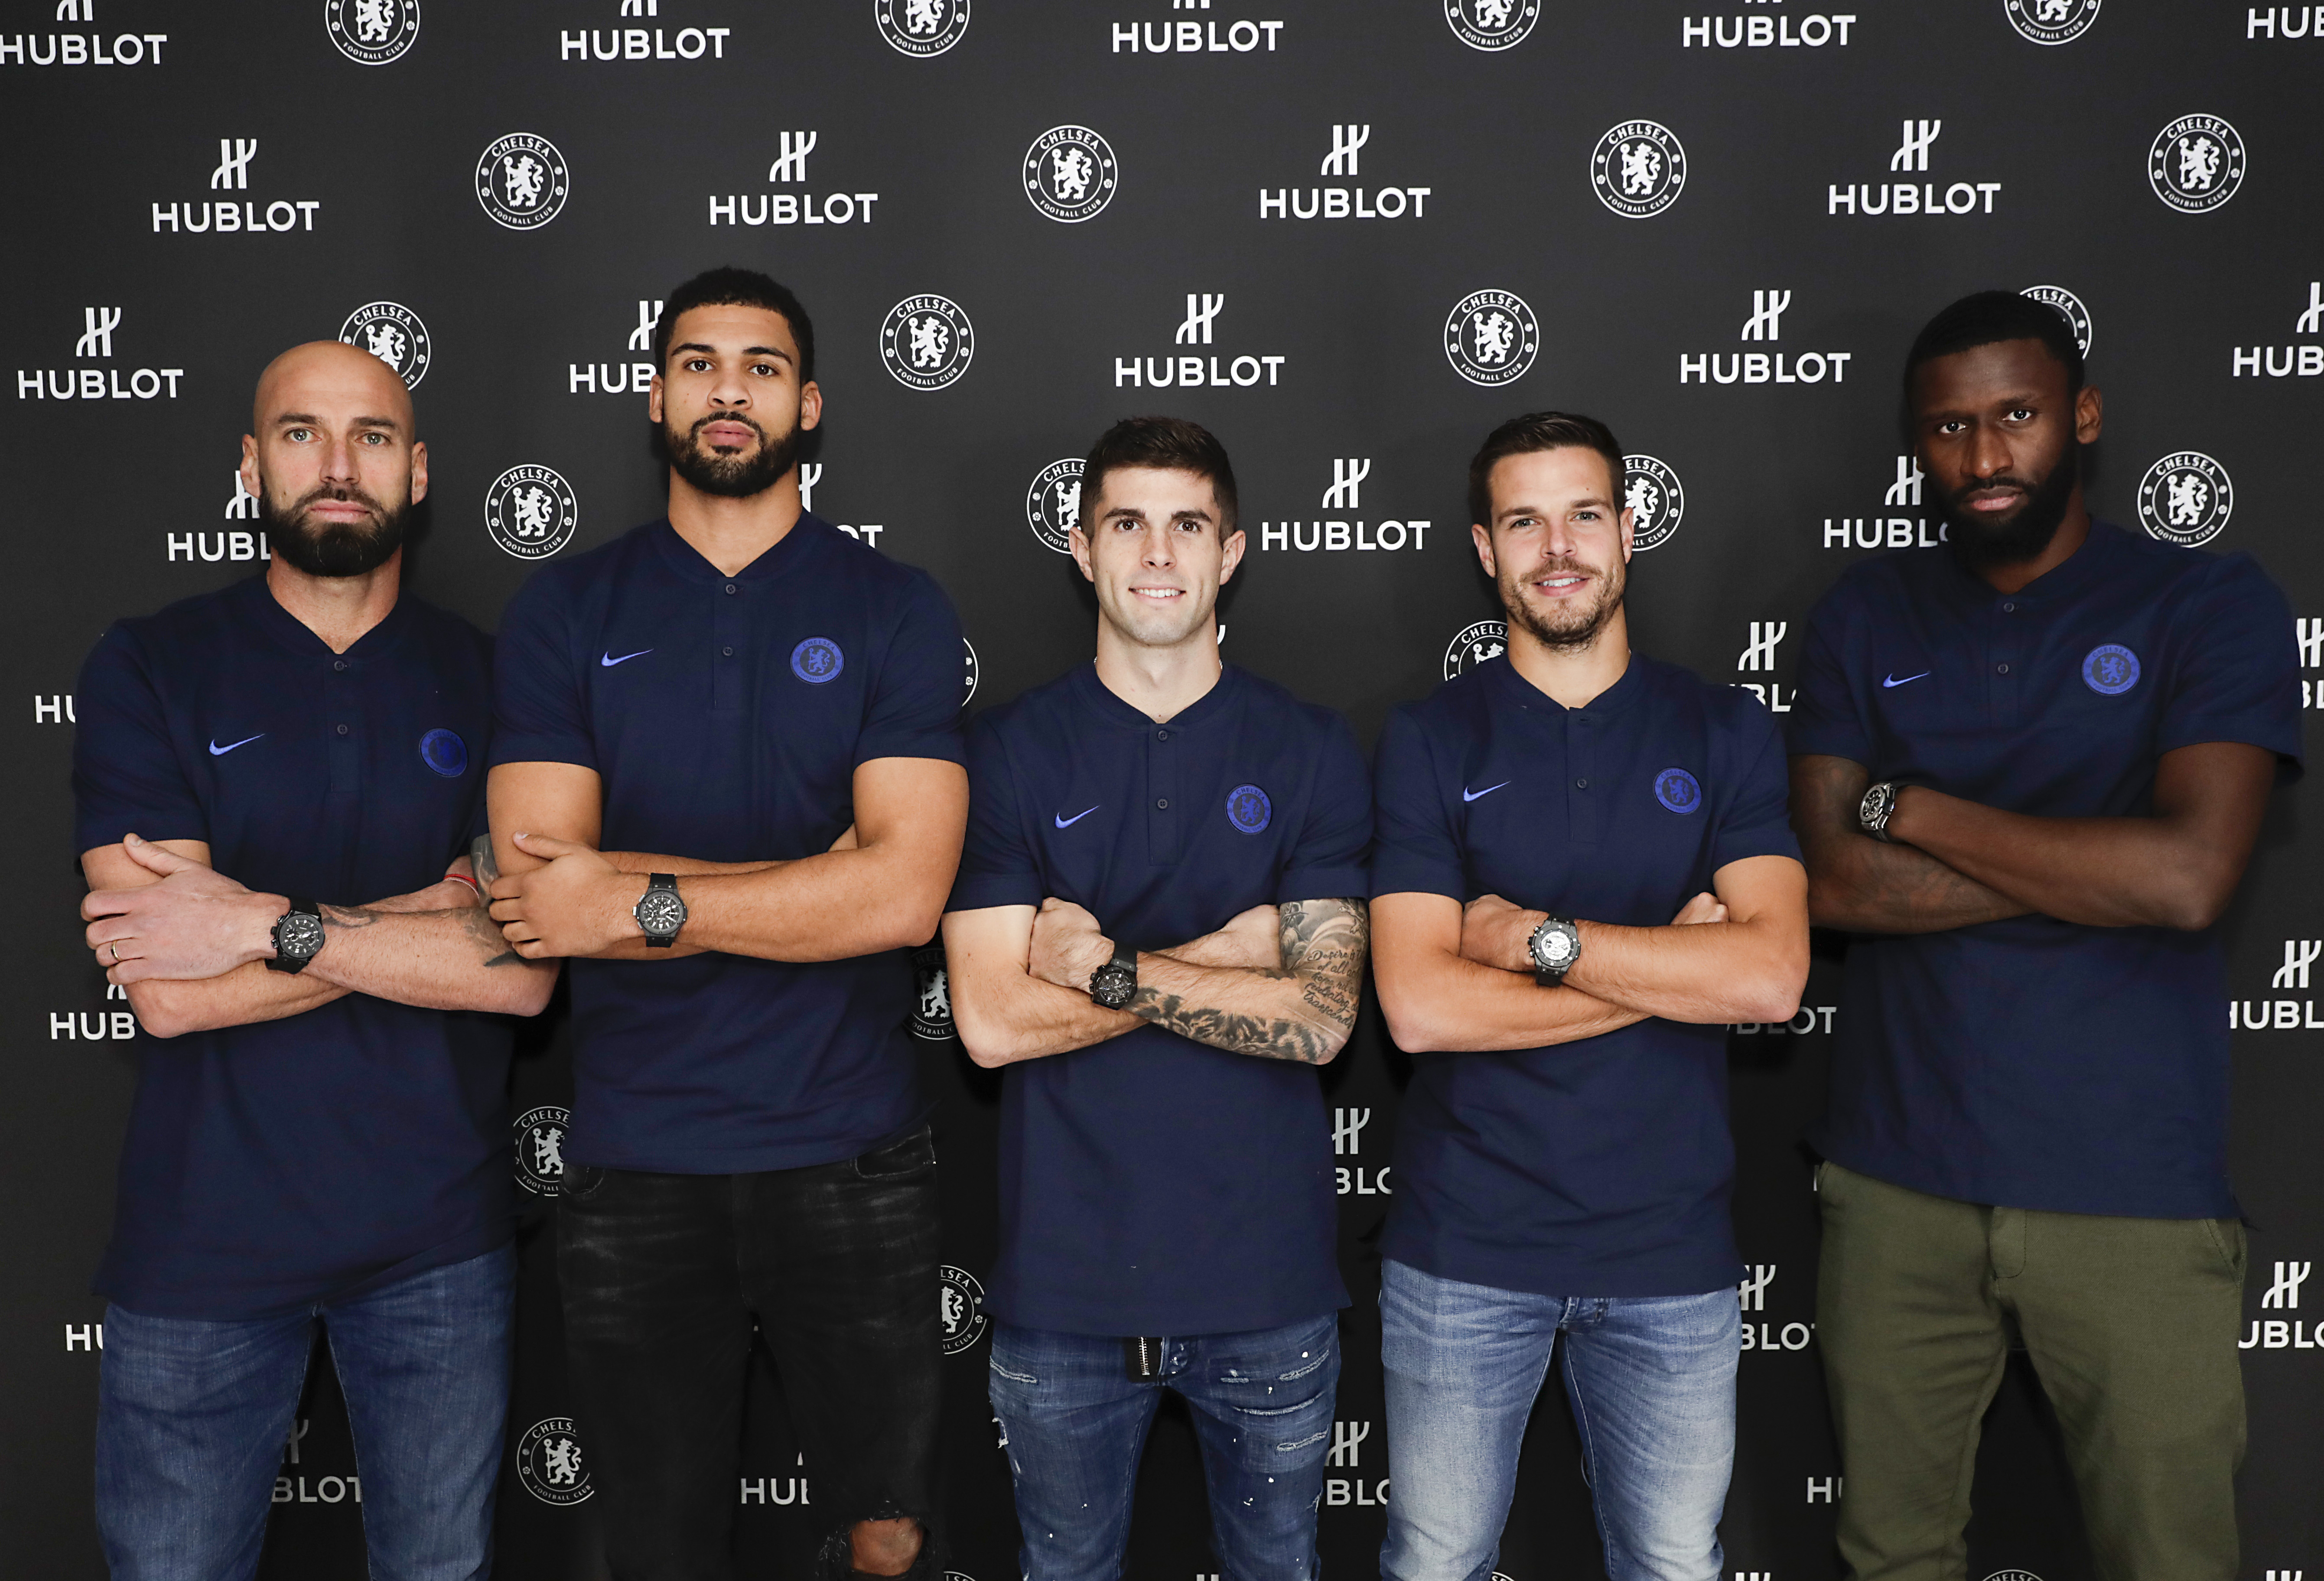 Hublot And Chelsea FC Celebrate Partnership And Launch Classic Fusion Chronograph Chelsea FC